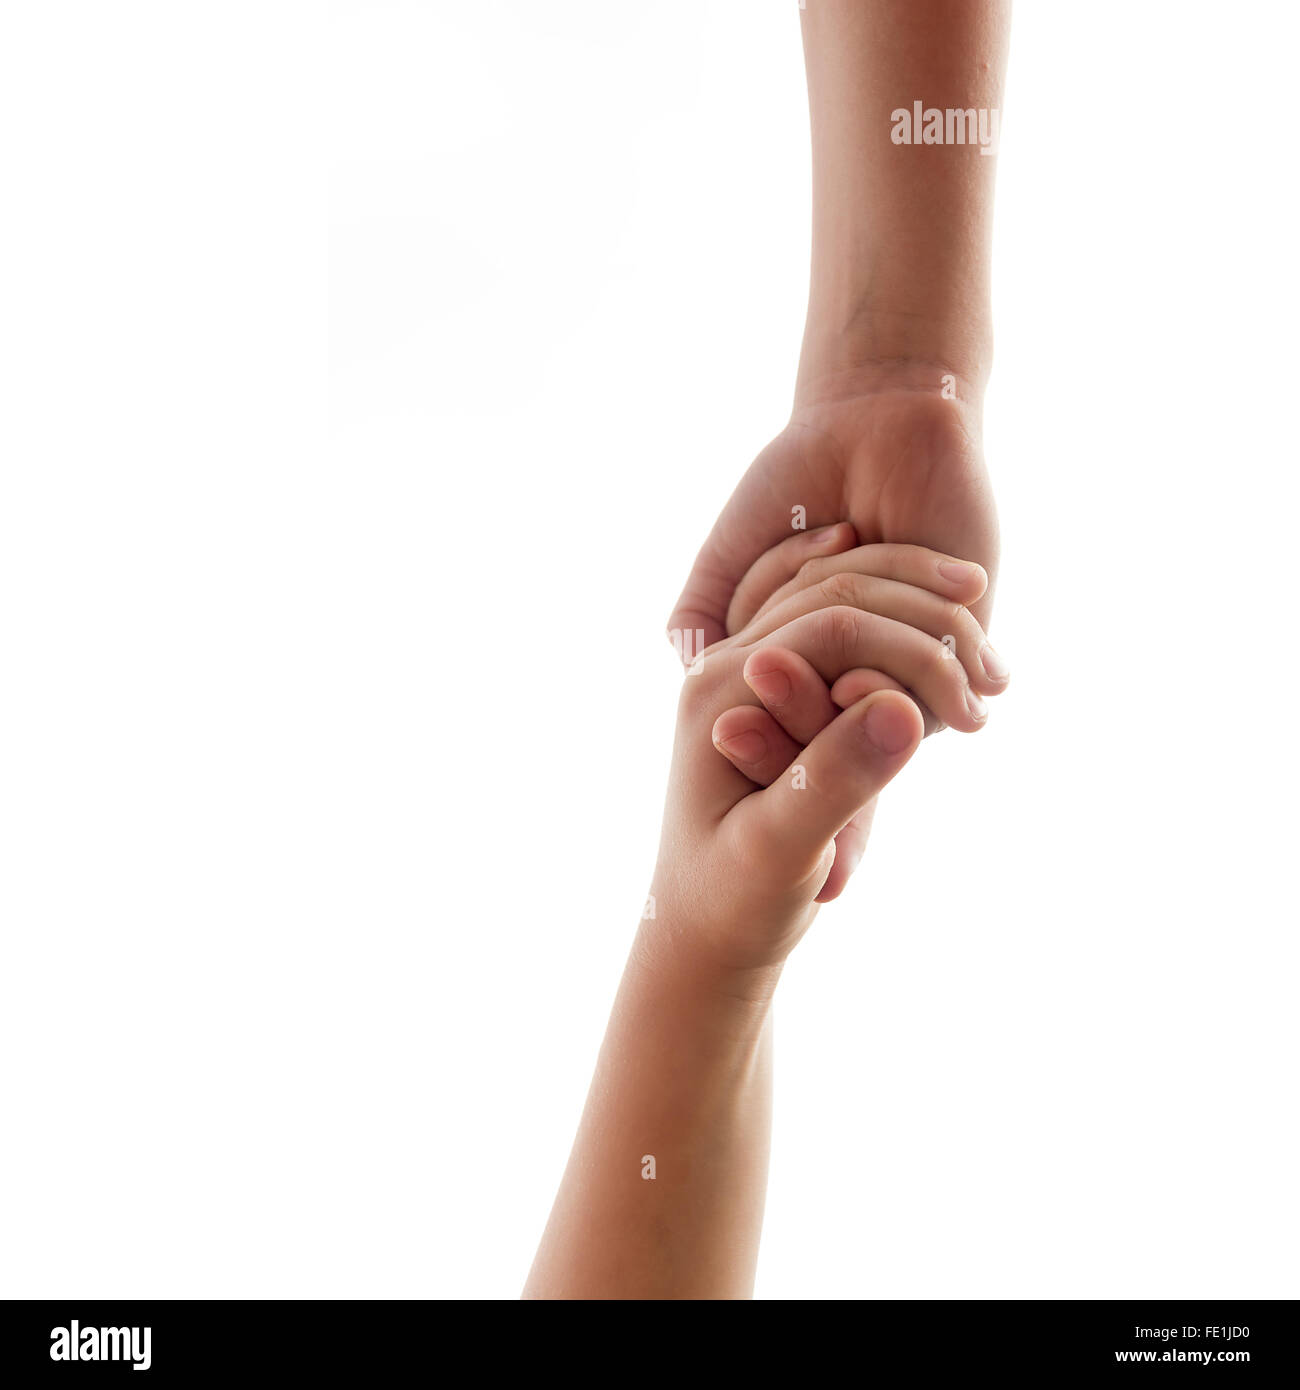 helping hands - two underage brothers or friends hold over white background - Stock Image